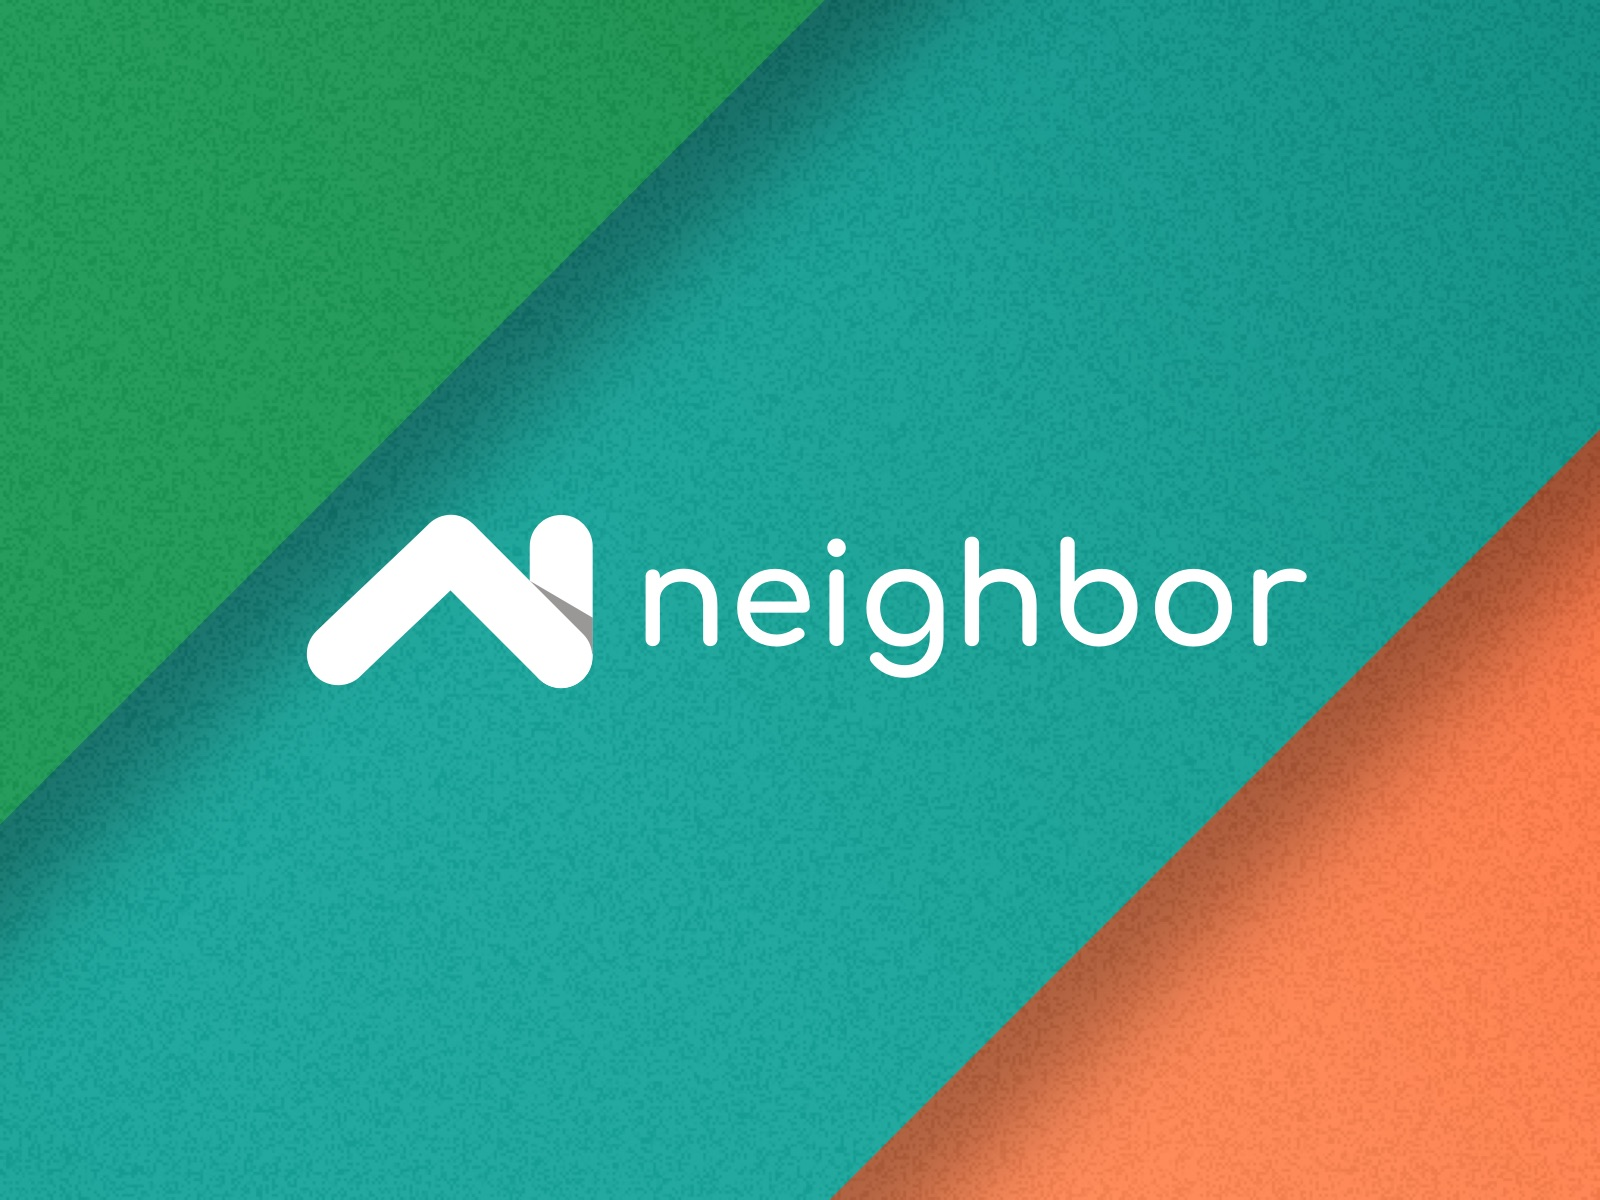 Neighbor Billing logo and brand colors as stripes.